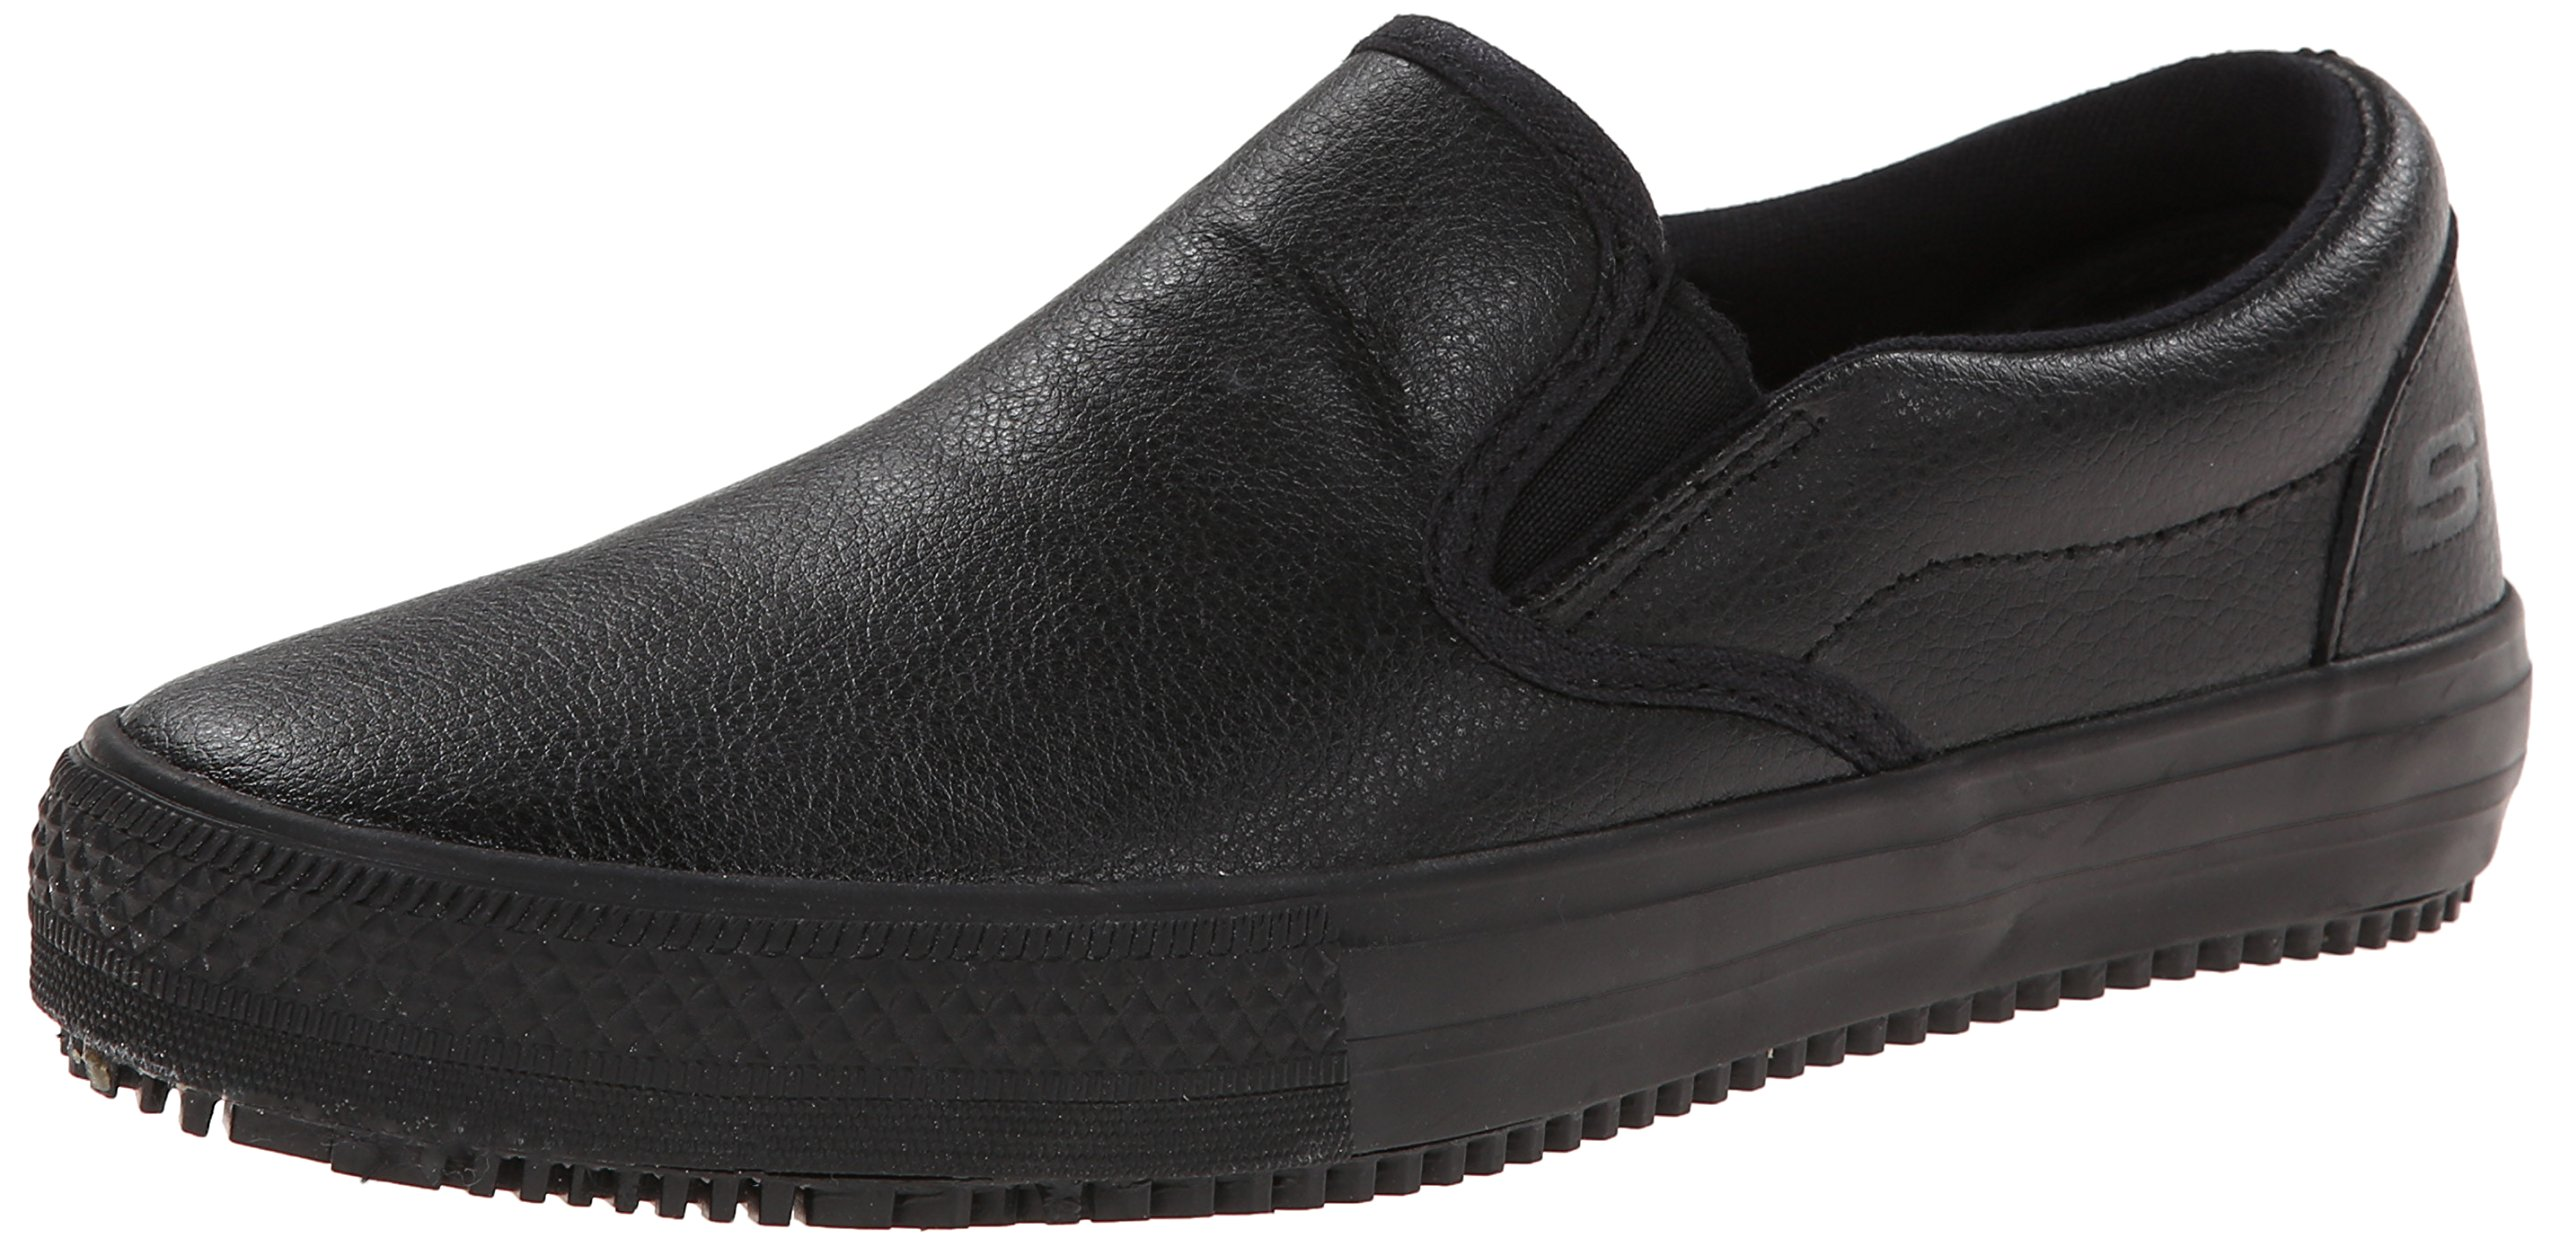 Skechers for Work Women's Maisto Slip-On,Black,5 M US